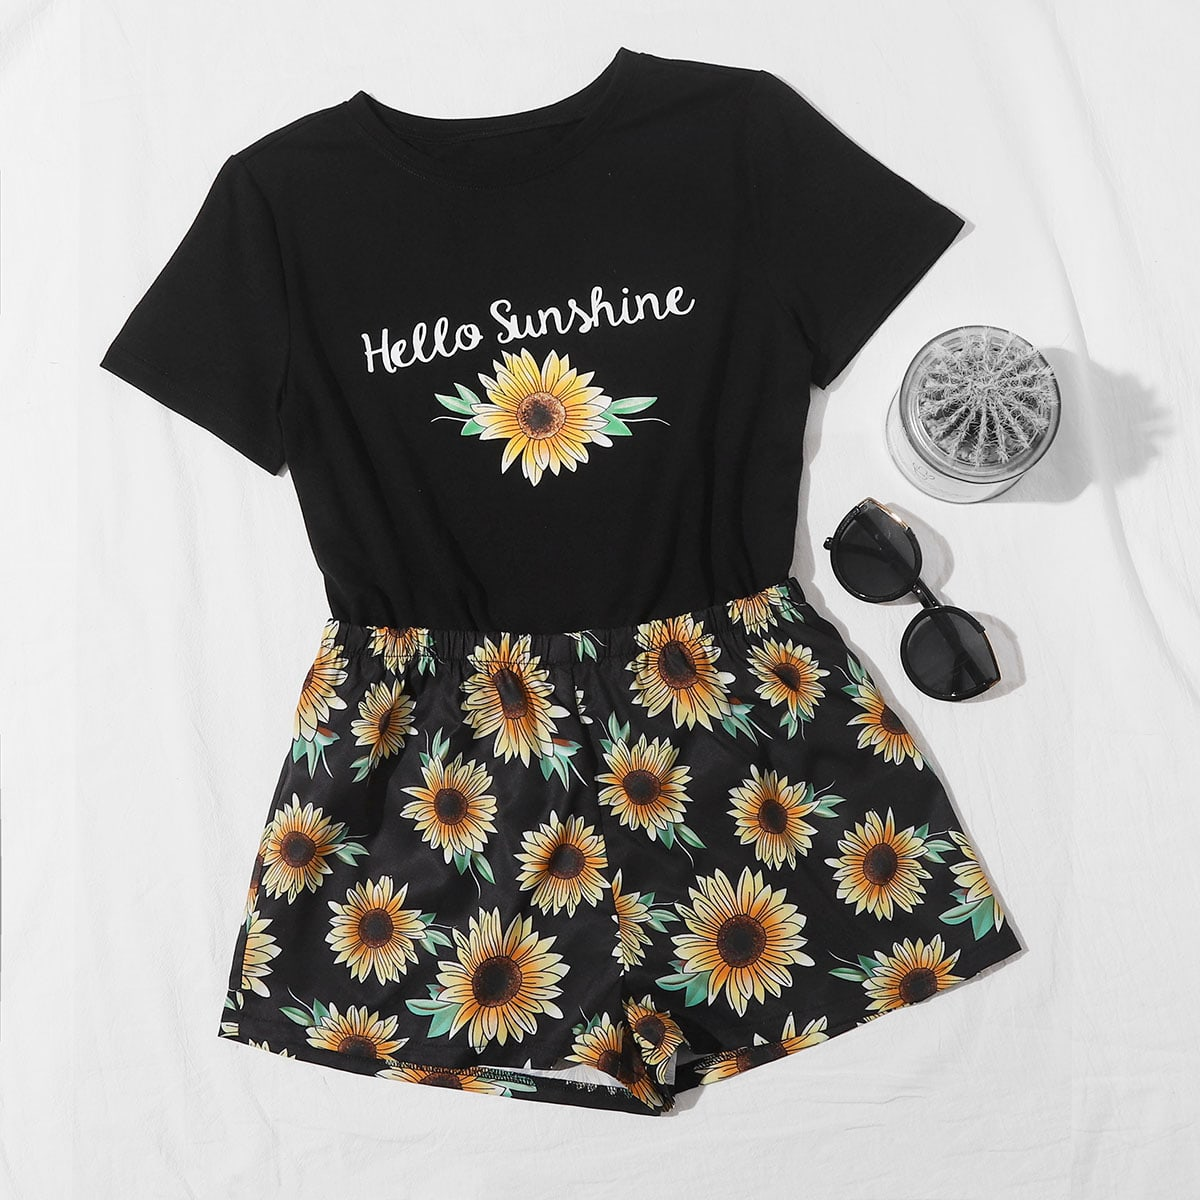 Slogan & Sunflower Print Tee With Shorts thumbnail